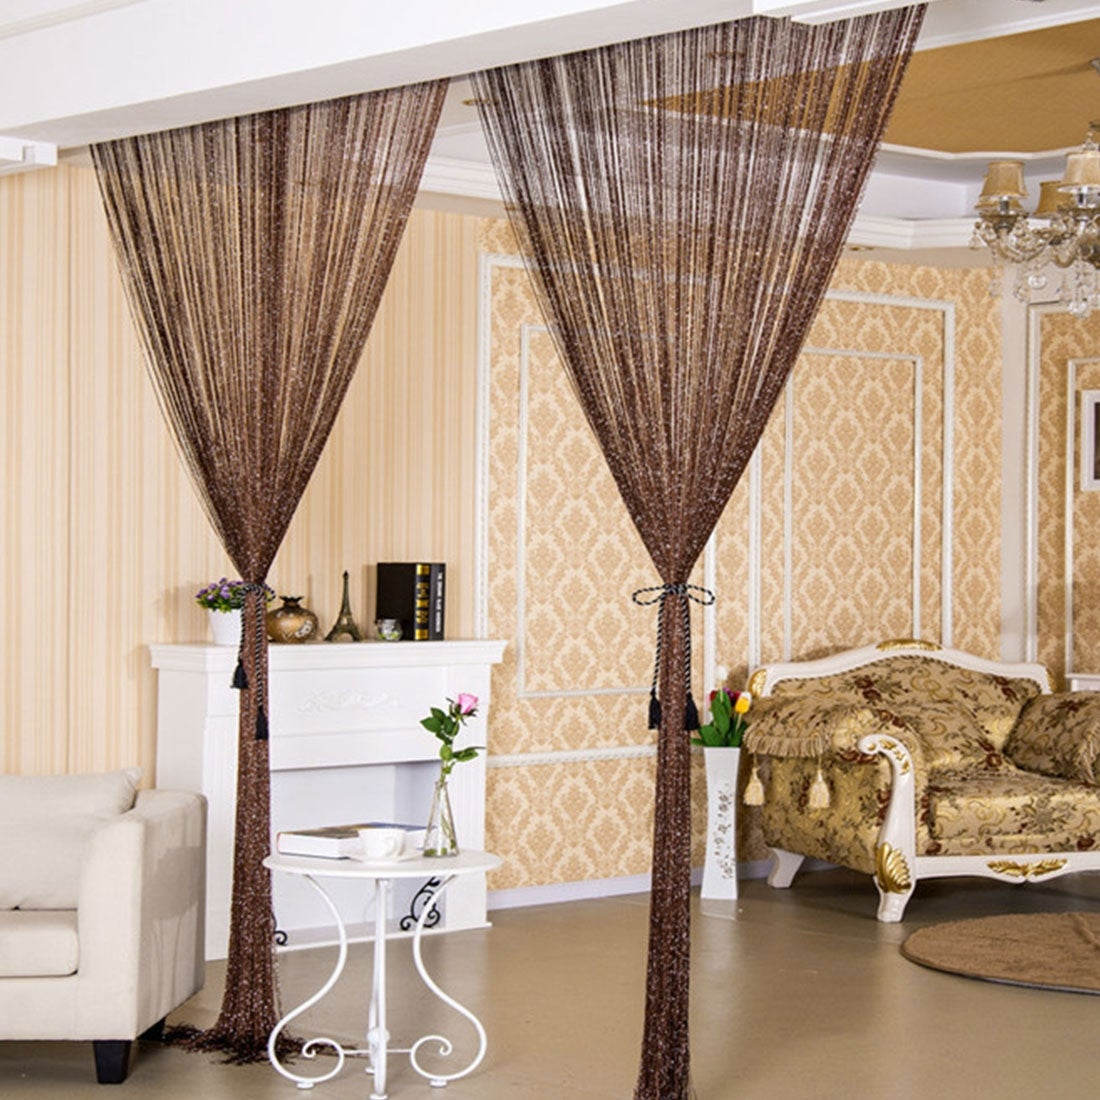 Glitter String Curtain Panel White 1 Pair 100cm x 200cm Easy to Fit